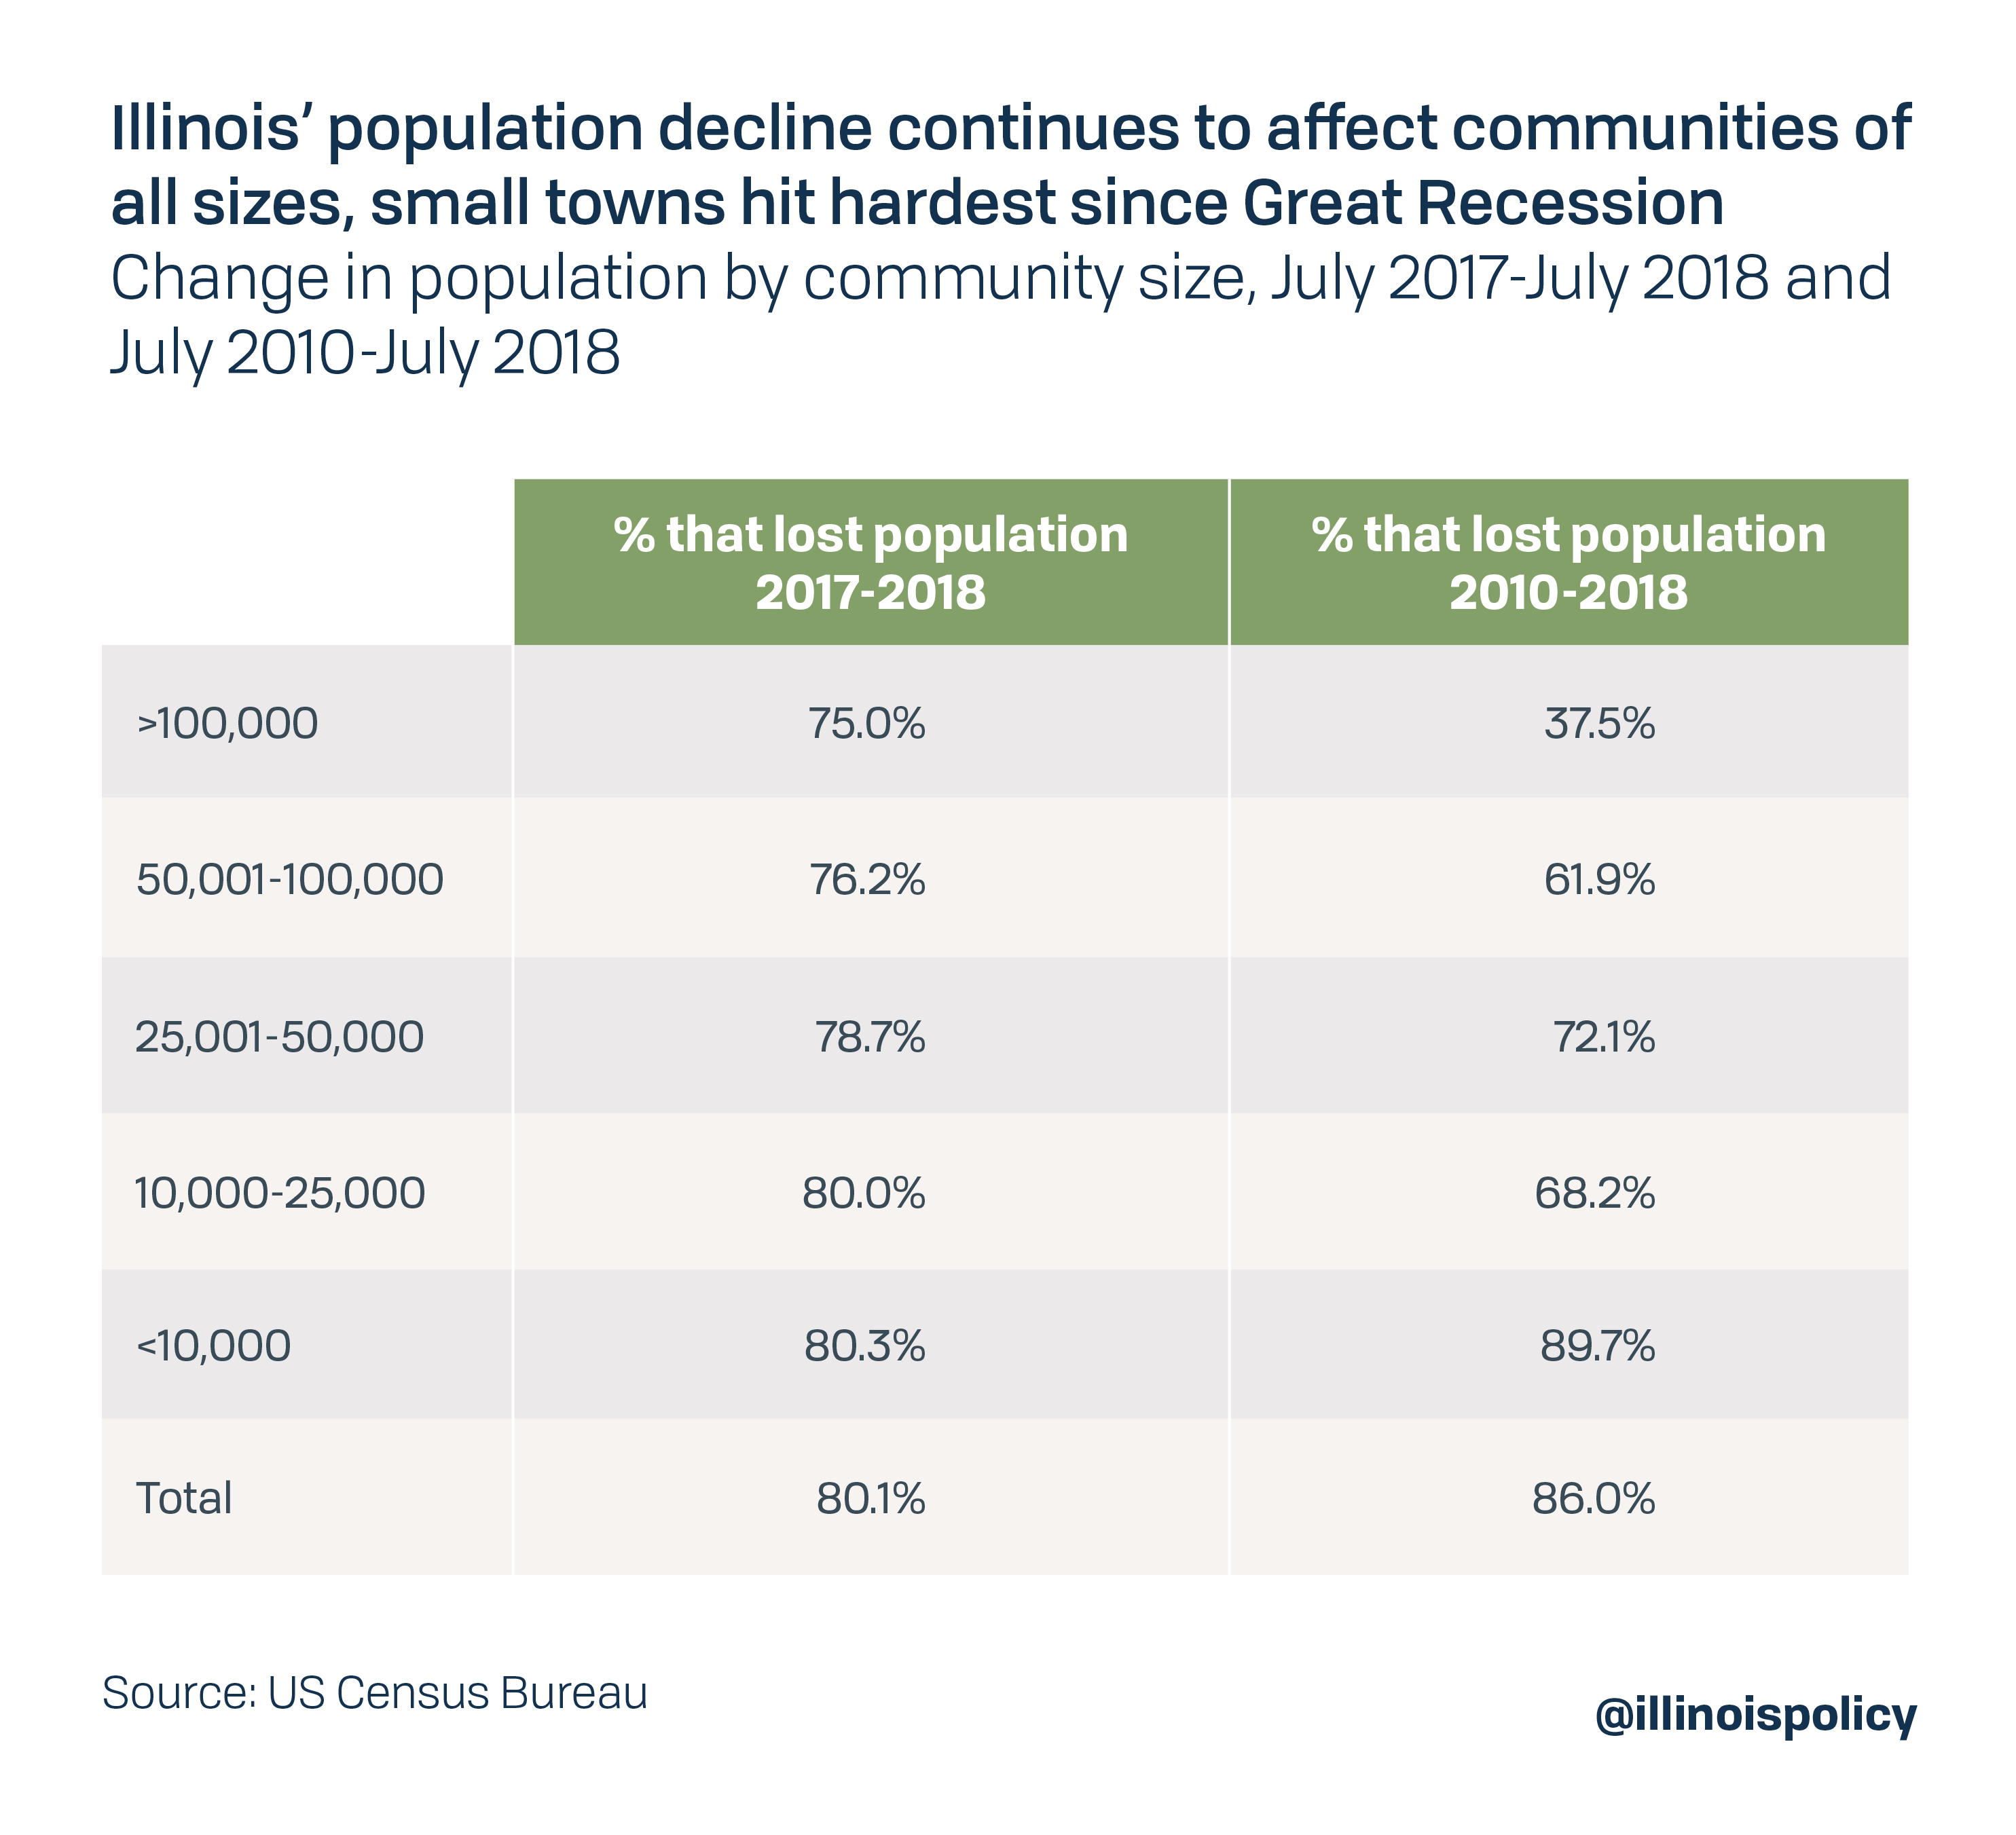 Illinois' population decline continues to affect communities of all sizes, small towns hit hardest since Great Recession